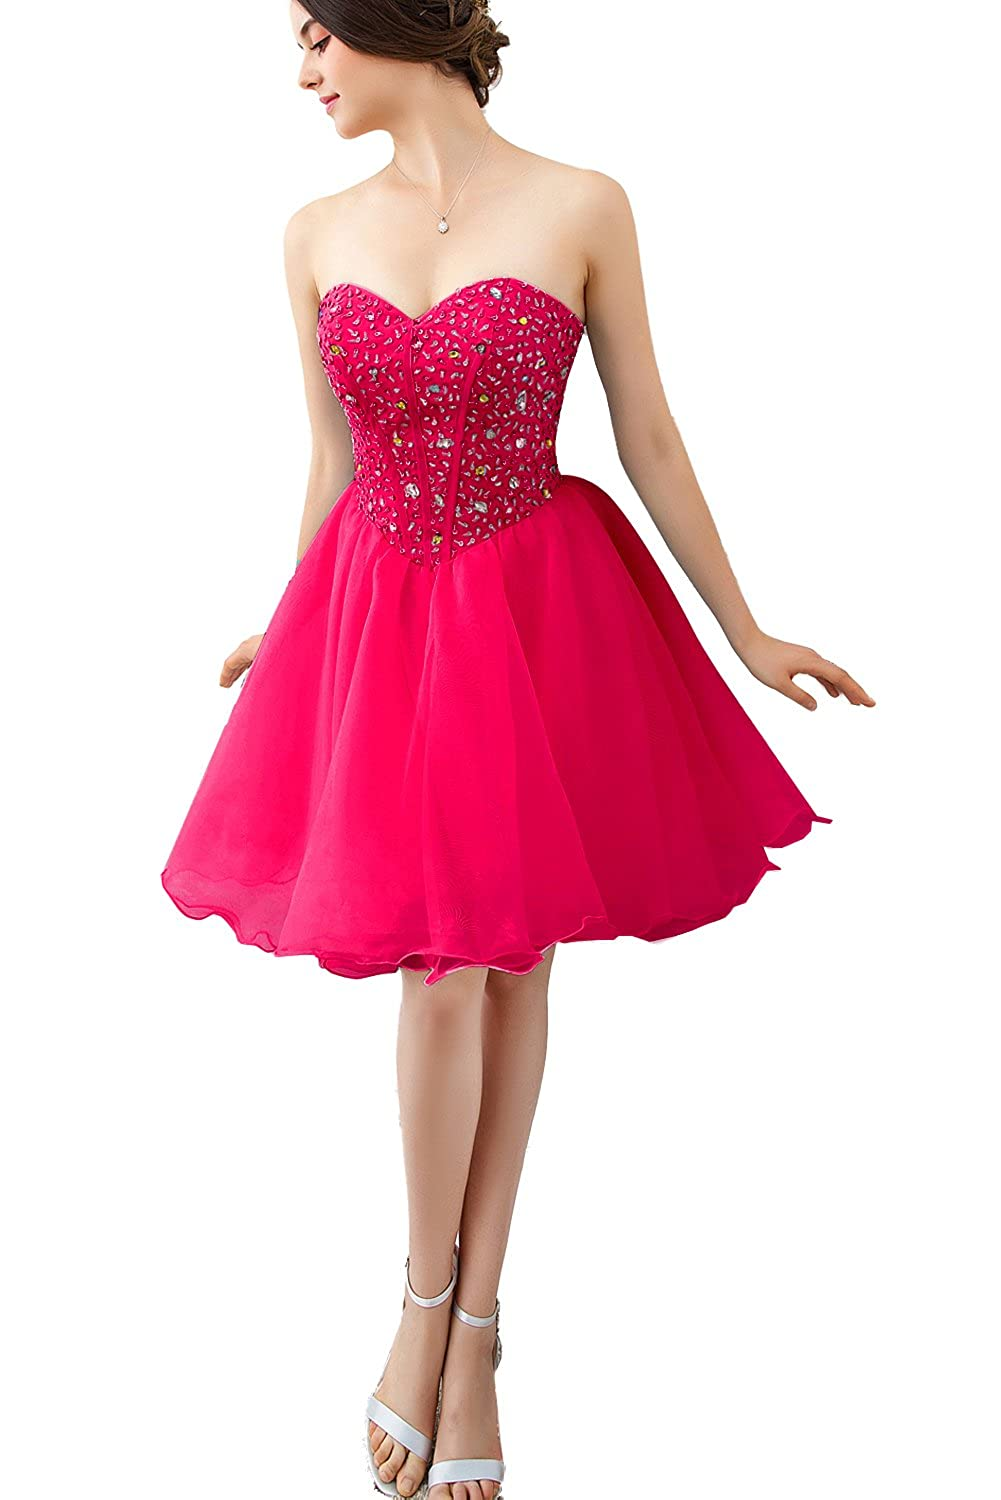 Fuchsia FASHION DRESS 2017 Women's Short Evening Prom Party Cocktail Dress